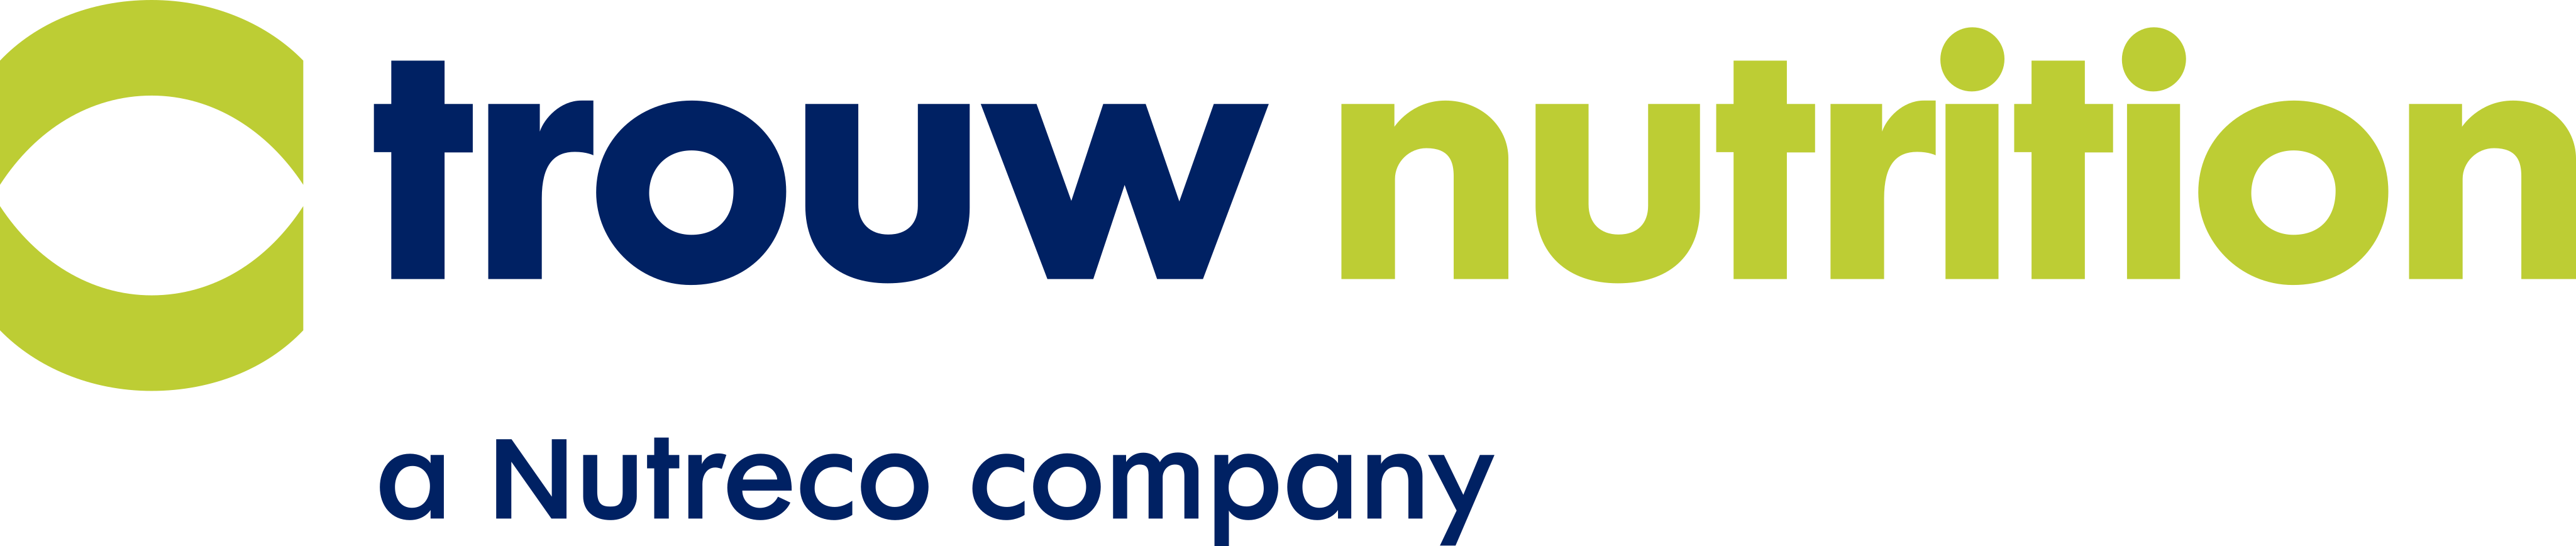 trouw nutrition logo - Trouw Nutrition Logo